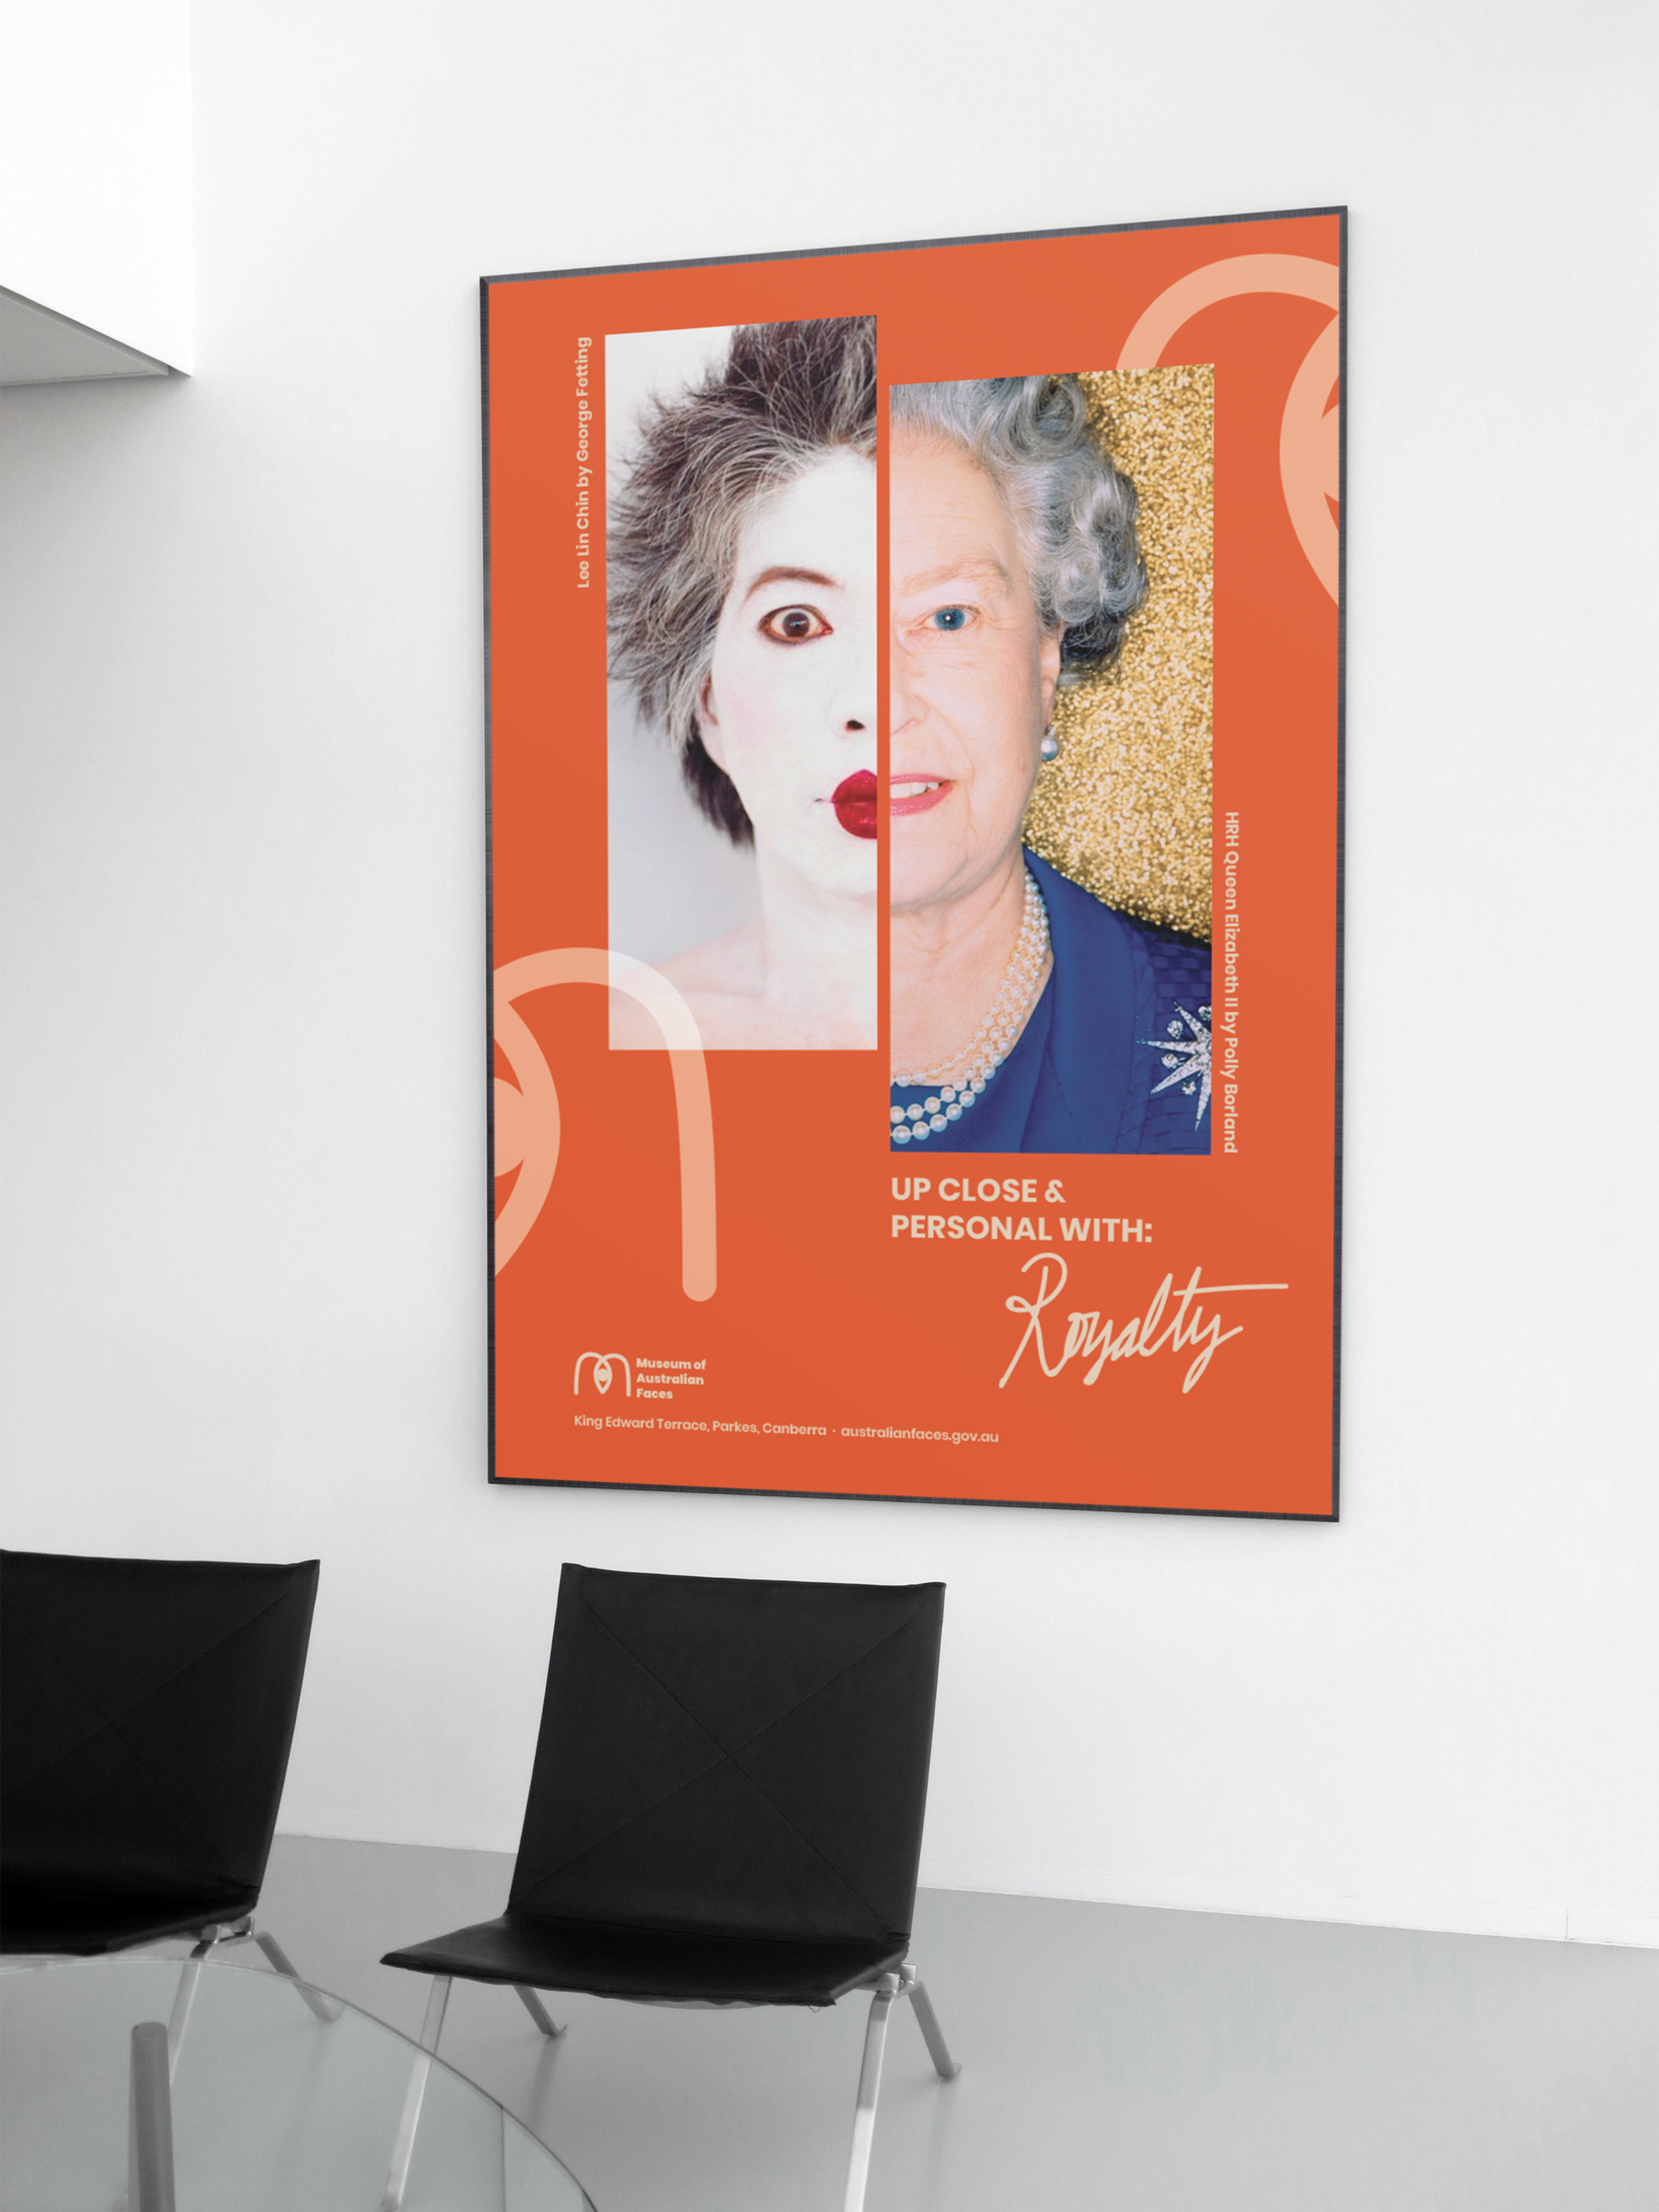 Museum of Australian Faces - A creative re-imagining of the National Portrait Gallery in Canberra, Australia. This re-brand focuses on promoting the iconic collection of over 2,600 paintings, photographs, sculptures and videos.+ visual identity/branding+ marketing/advertising+ environmental design